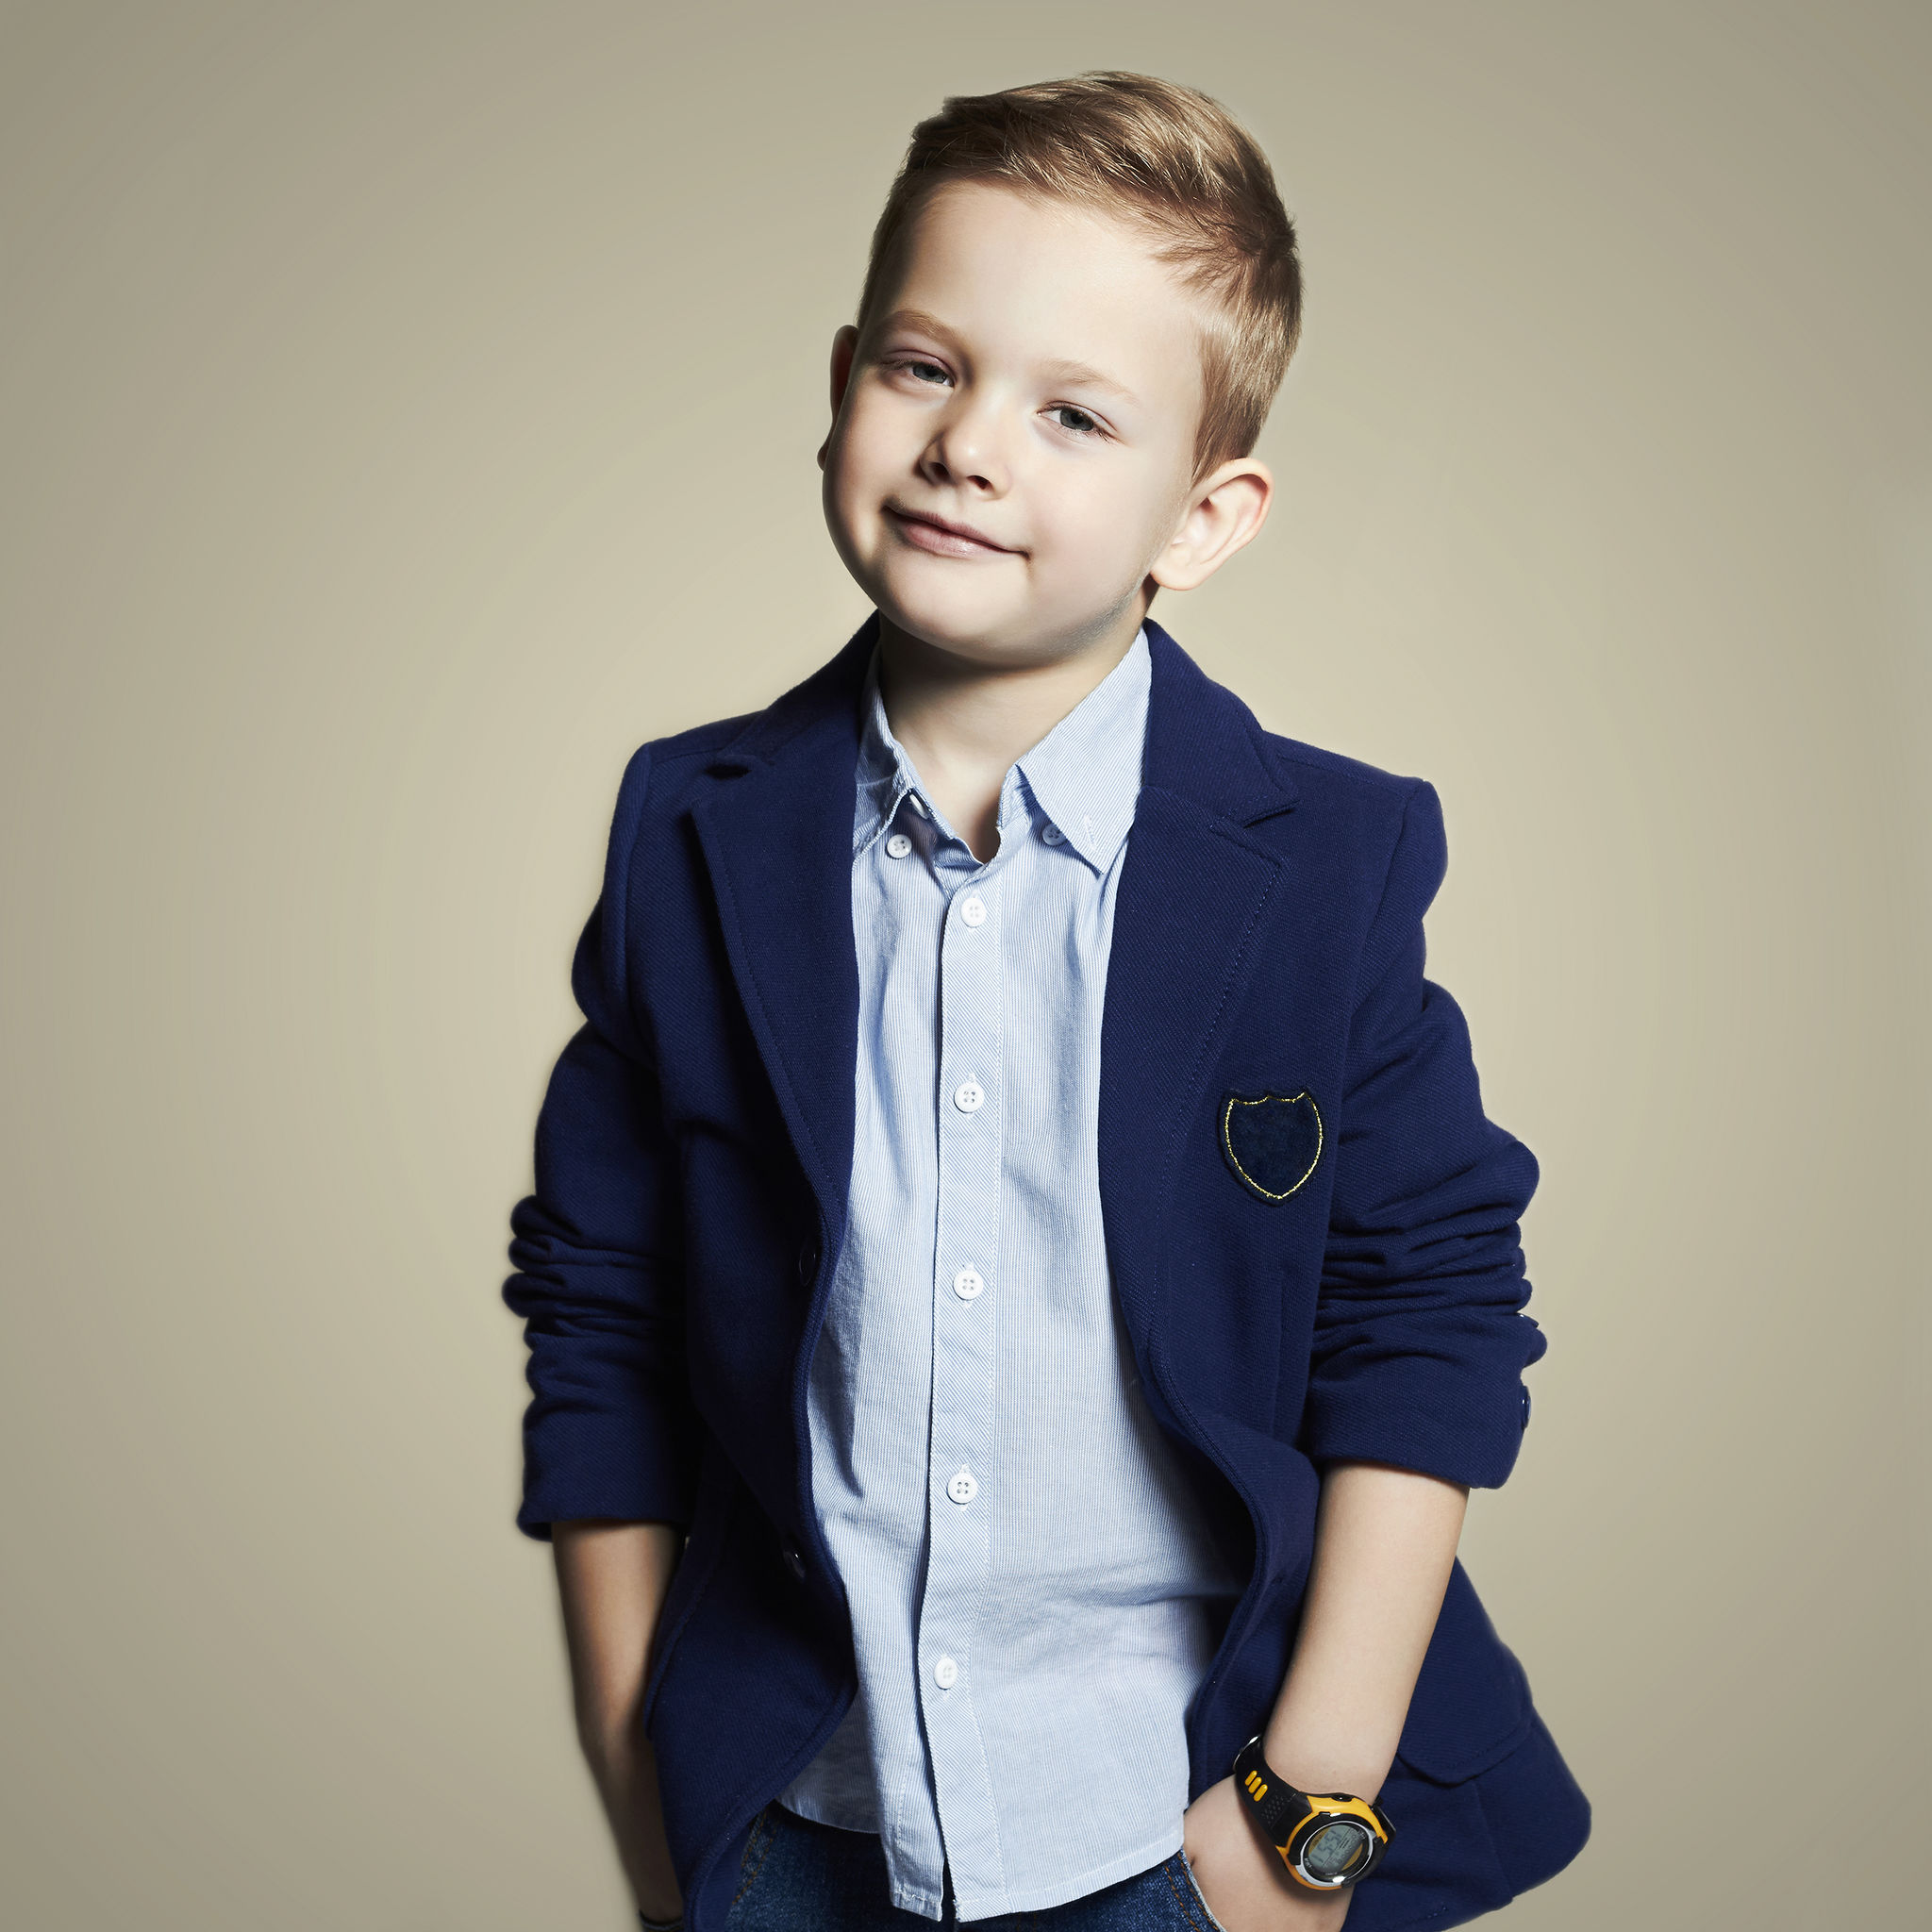 Smart young boy in blazer